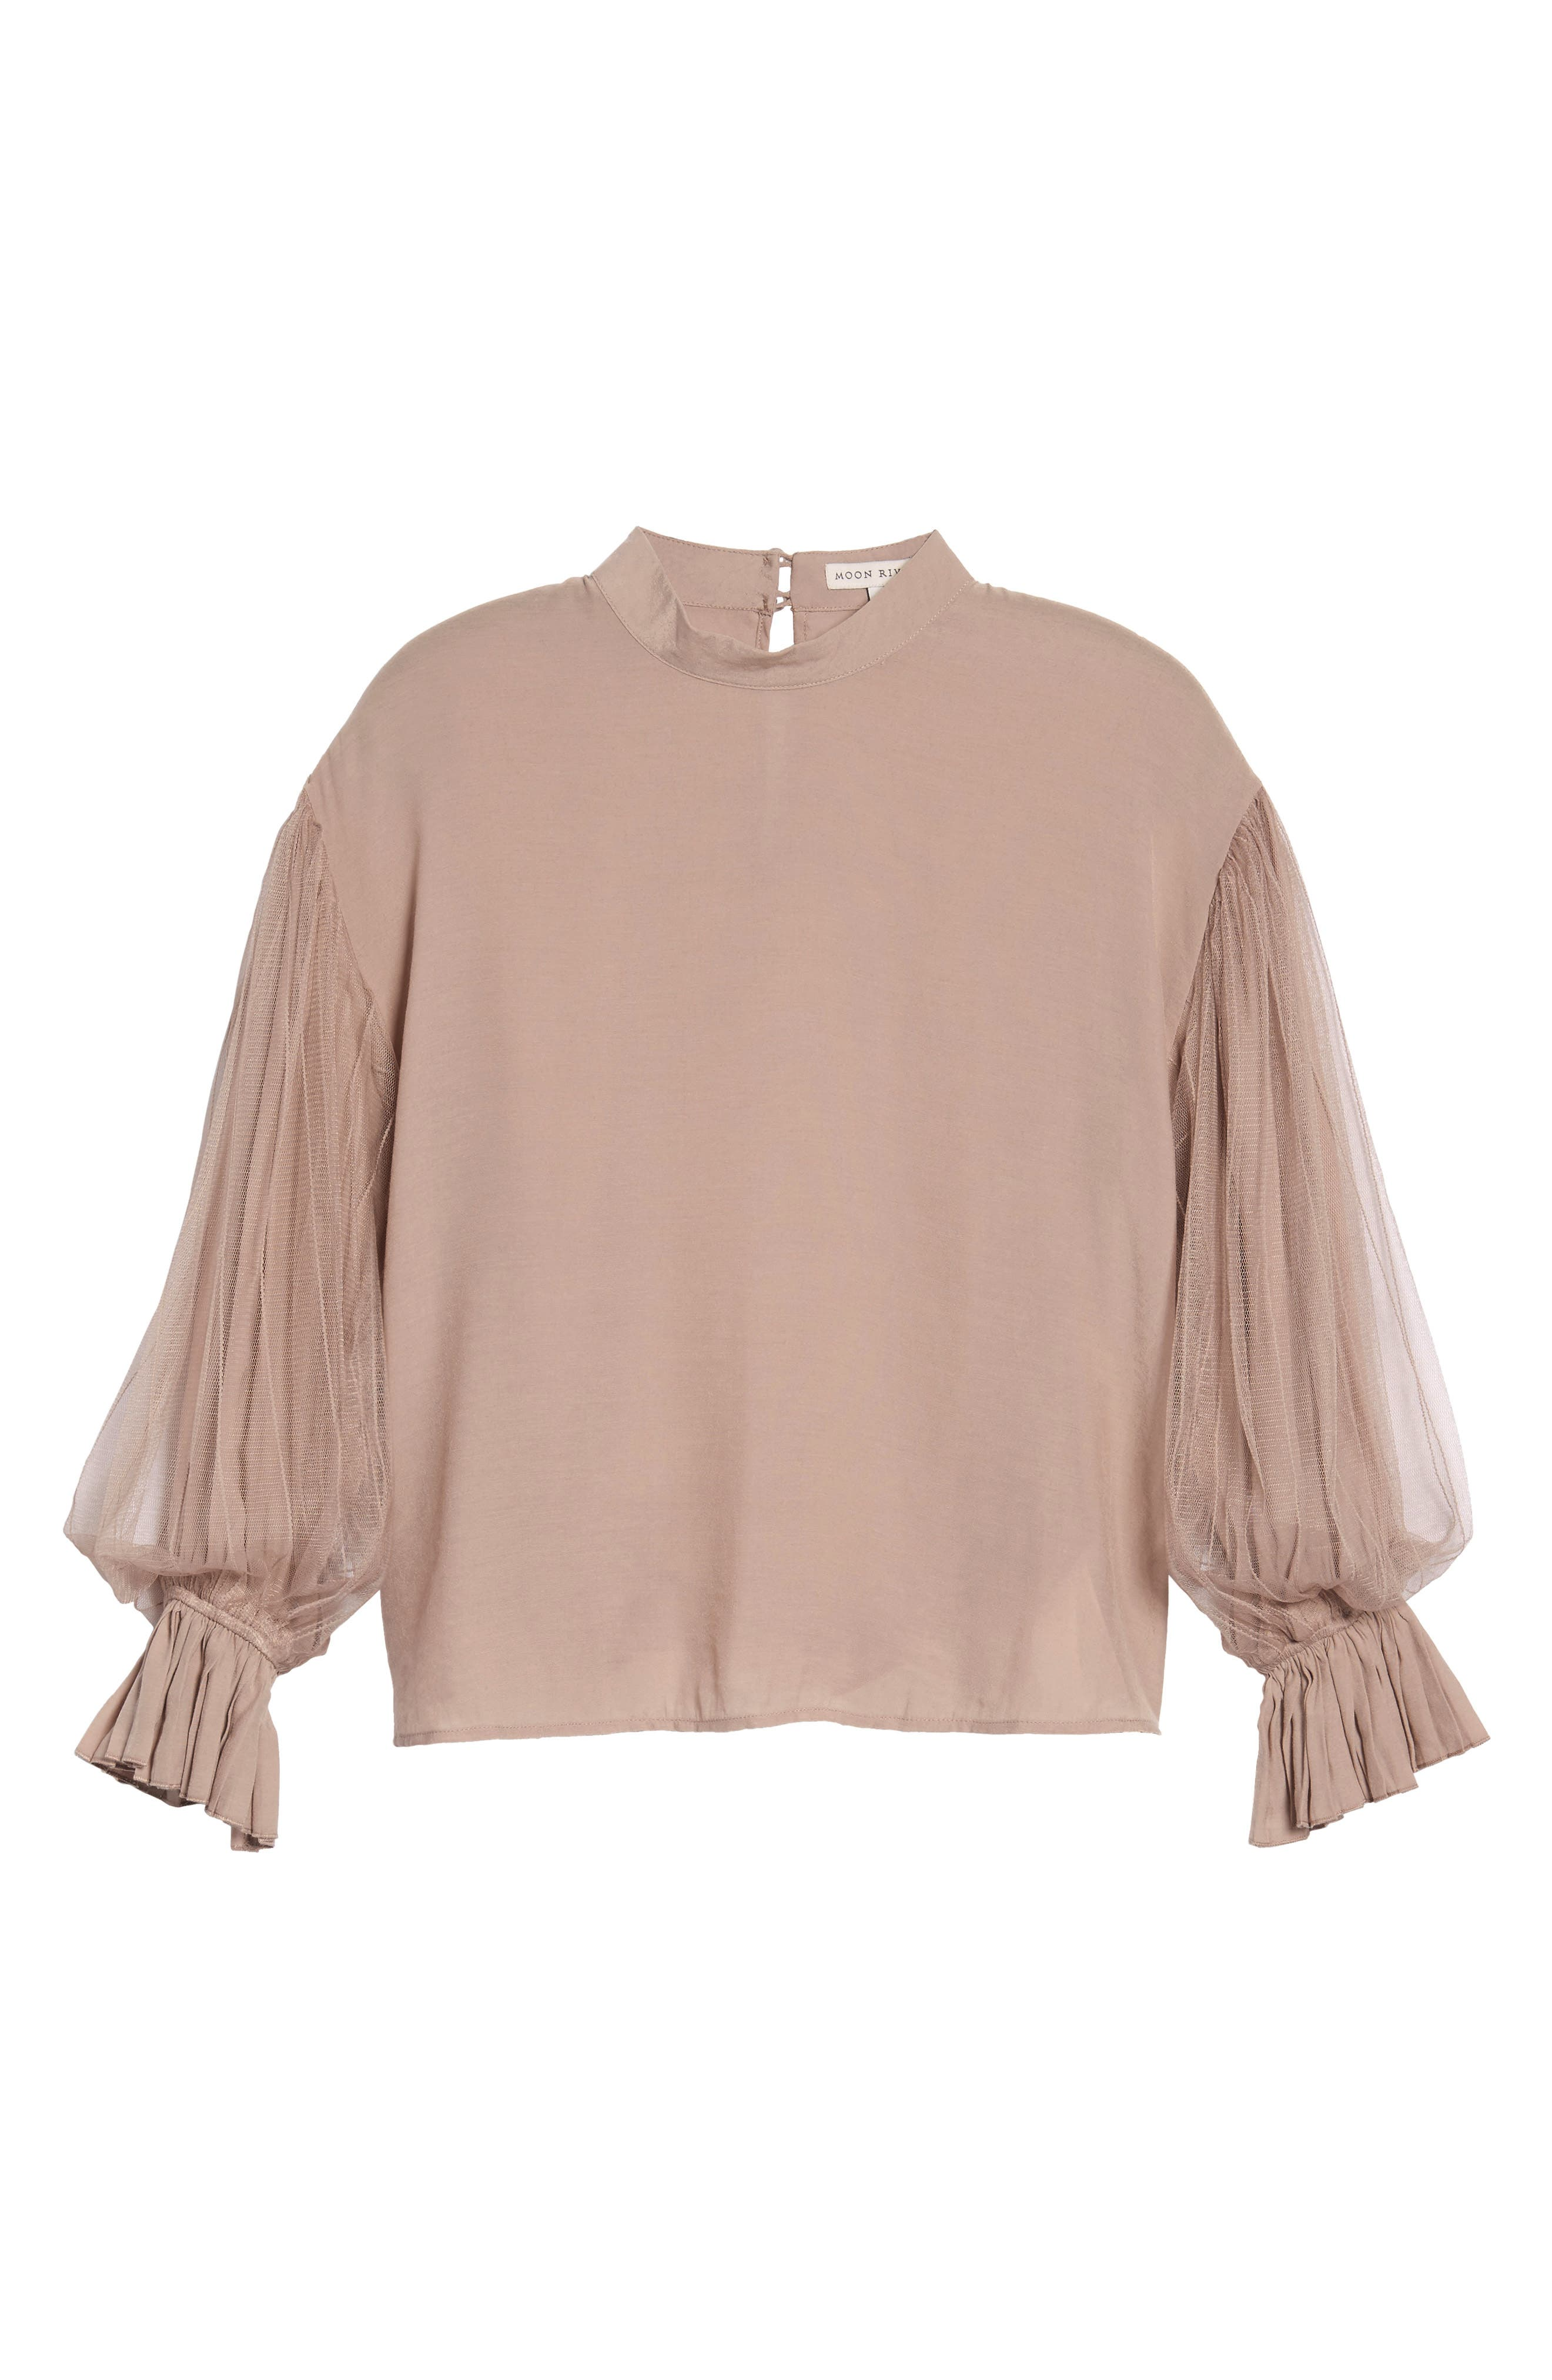 Tulle Puff Sleeve Top,                             Alternate thumbnail 6, color,                             650